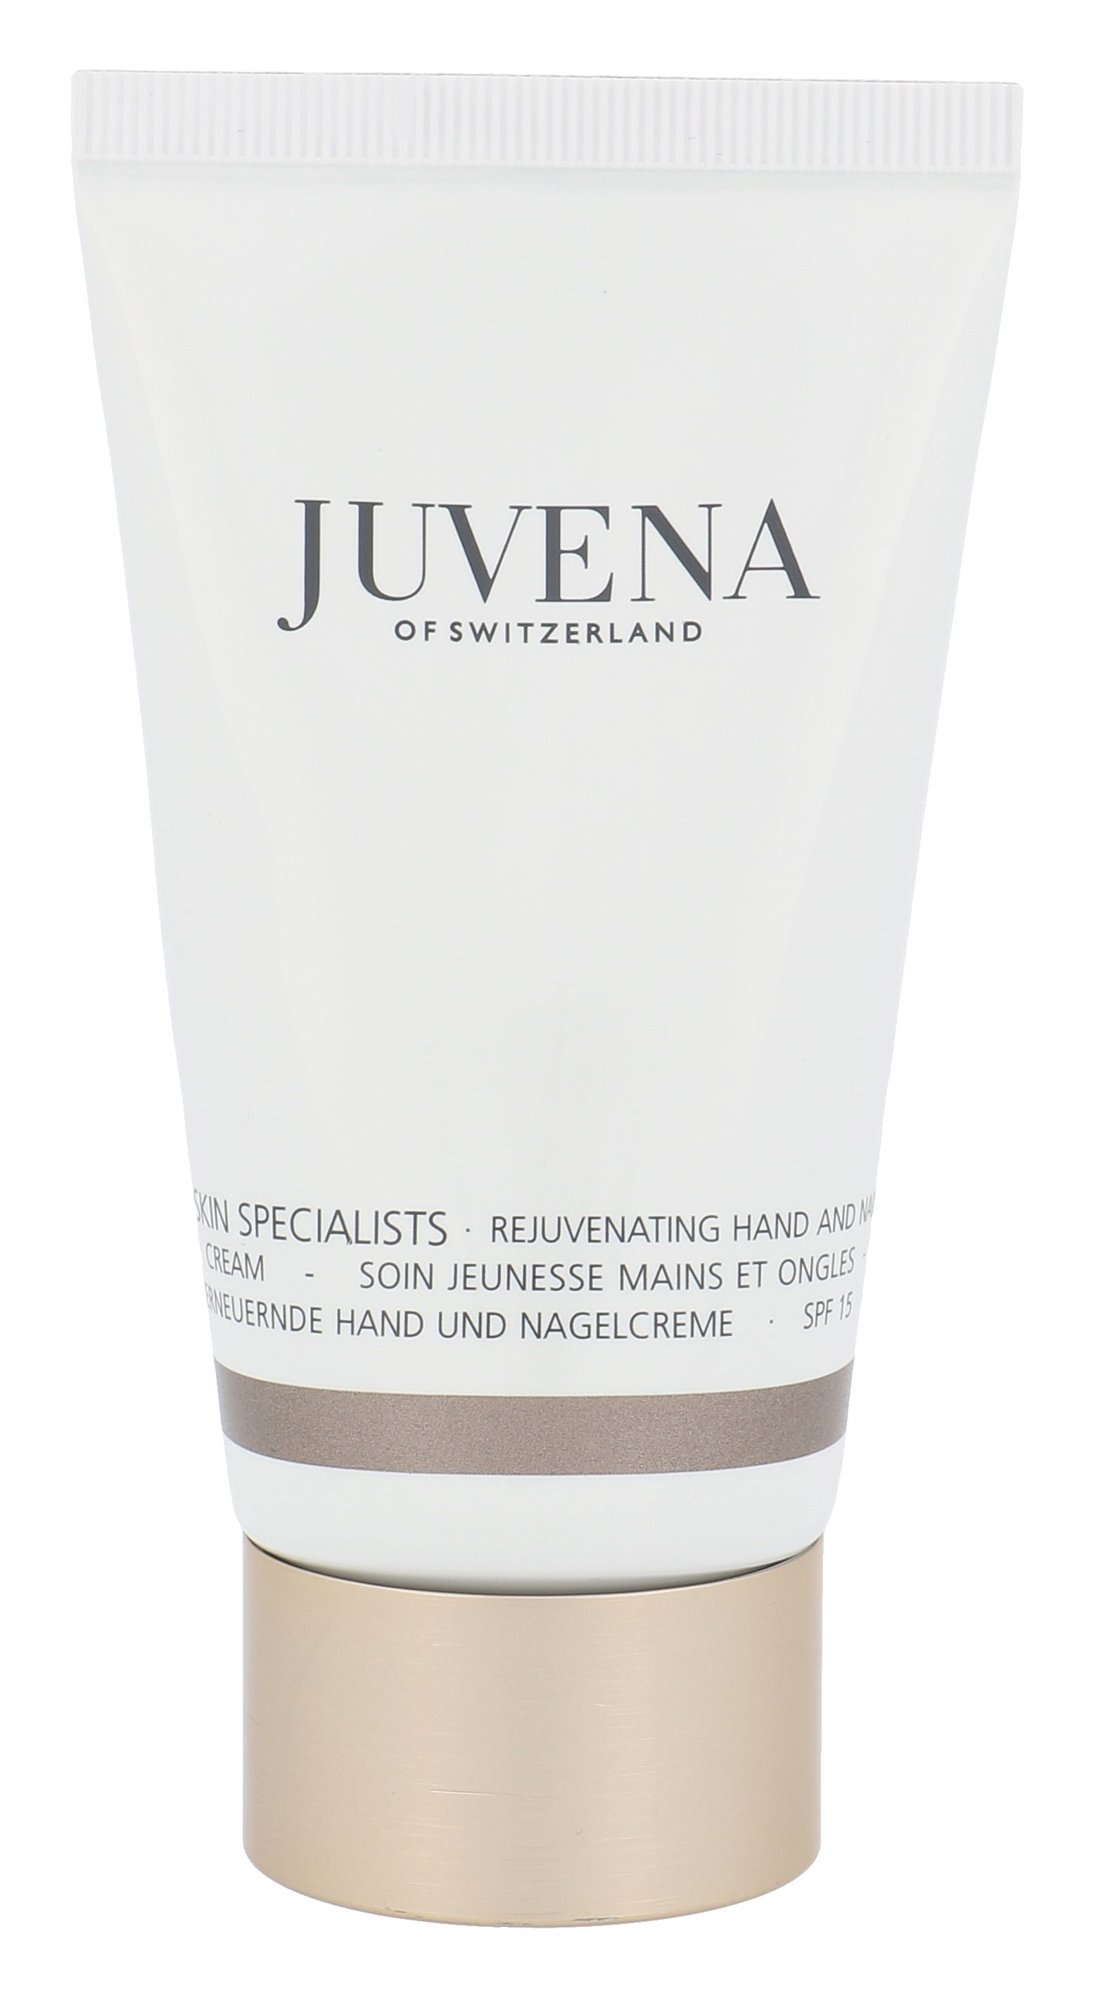 Juvena Skin Specialists Cosmetic 75ml